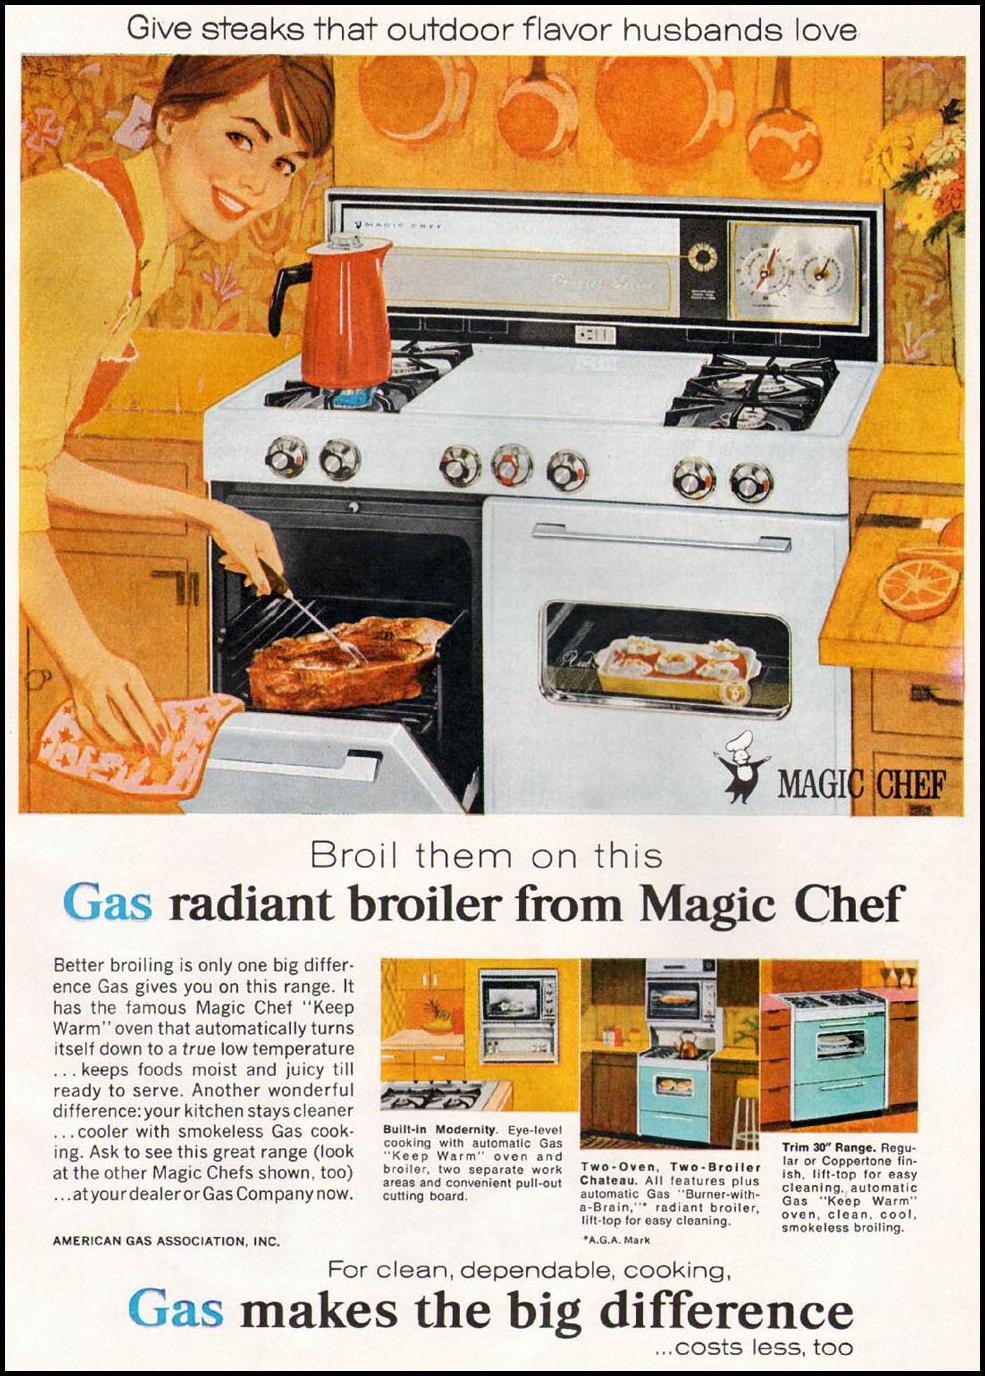 MAGIC CHEF GAS RANGE GOOD HOUSEKEEPING 10/01/1965 p. 151